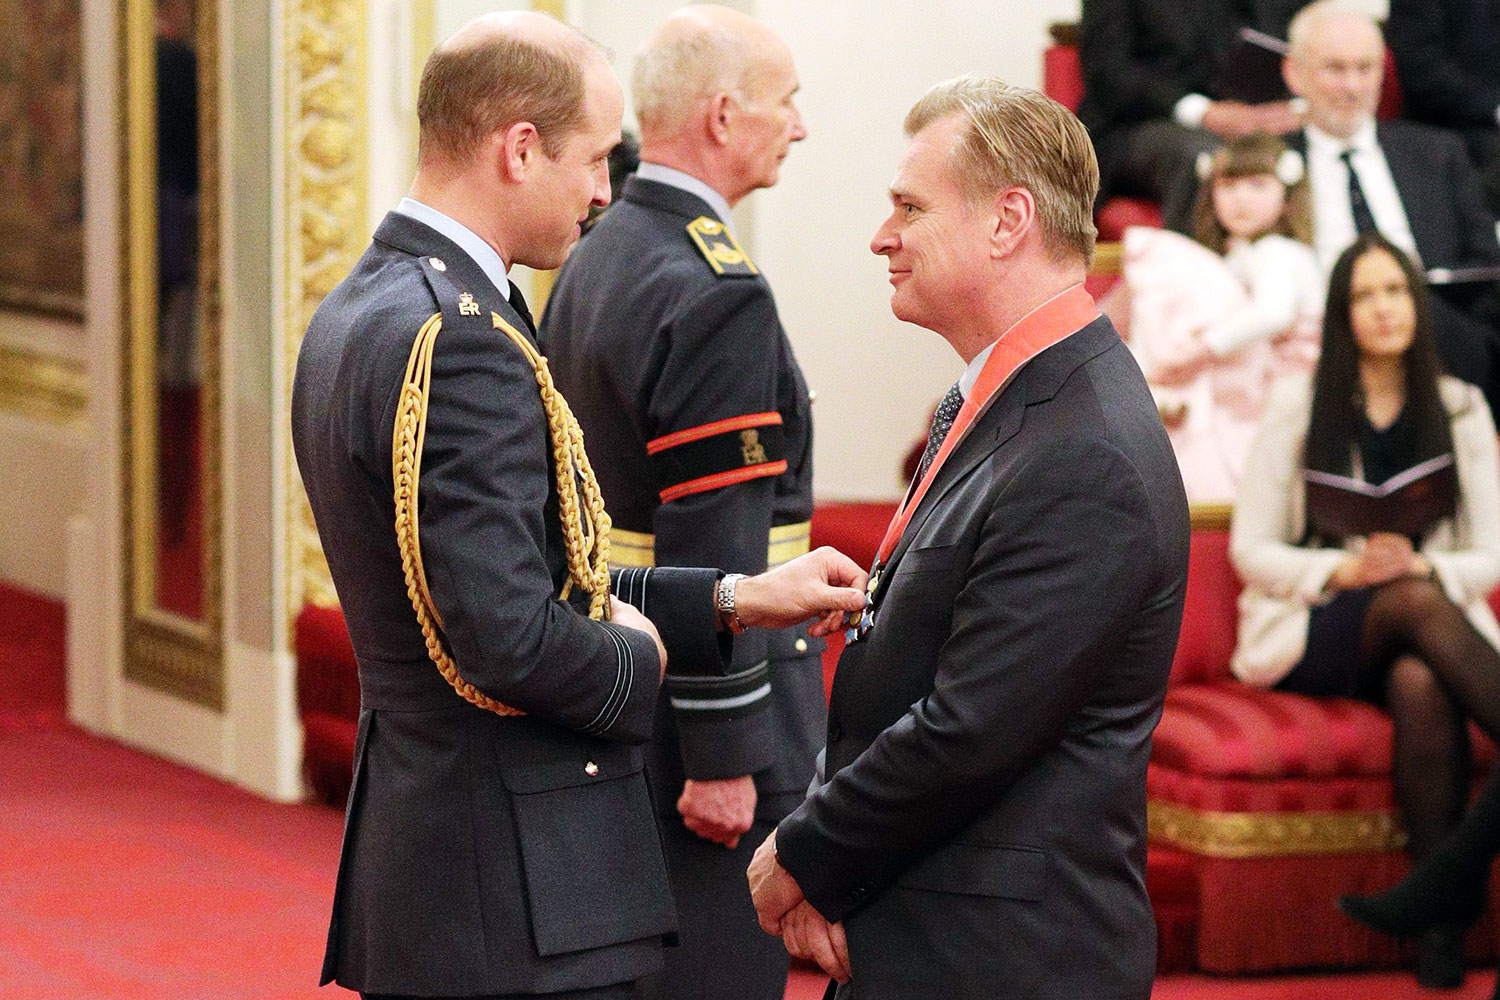 Christopher Nolan is made a CBE (Commander of the Order of the British Empire) by the Duke of Cambridge at Buckingham Palace.